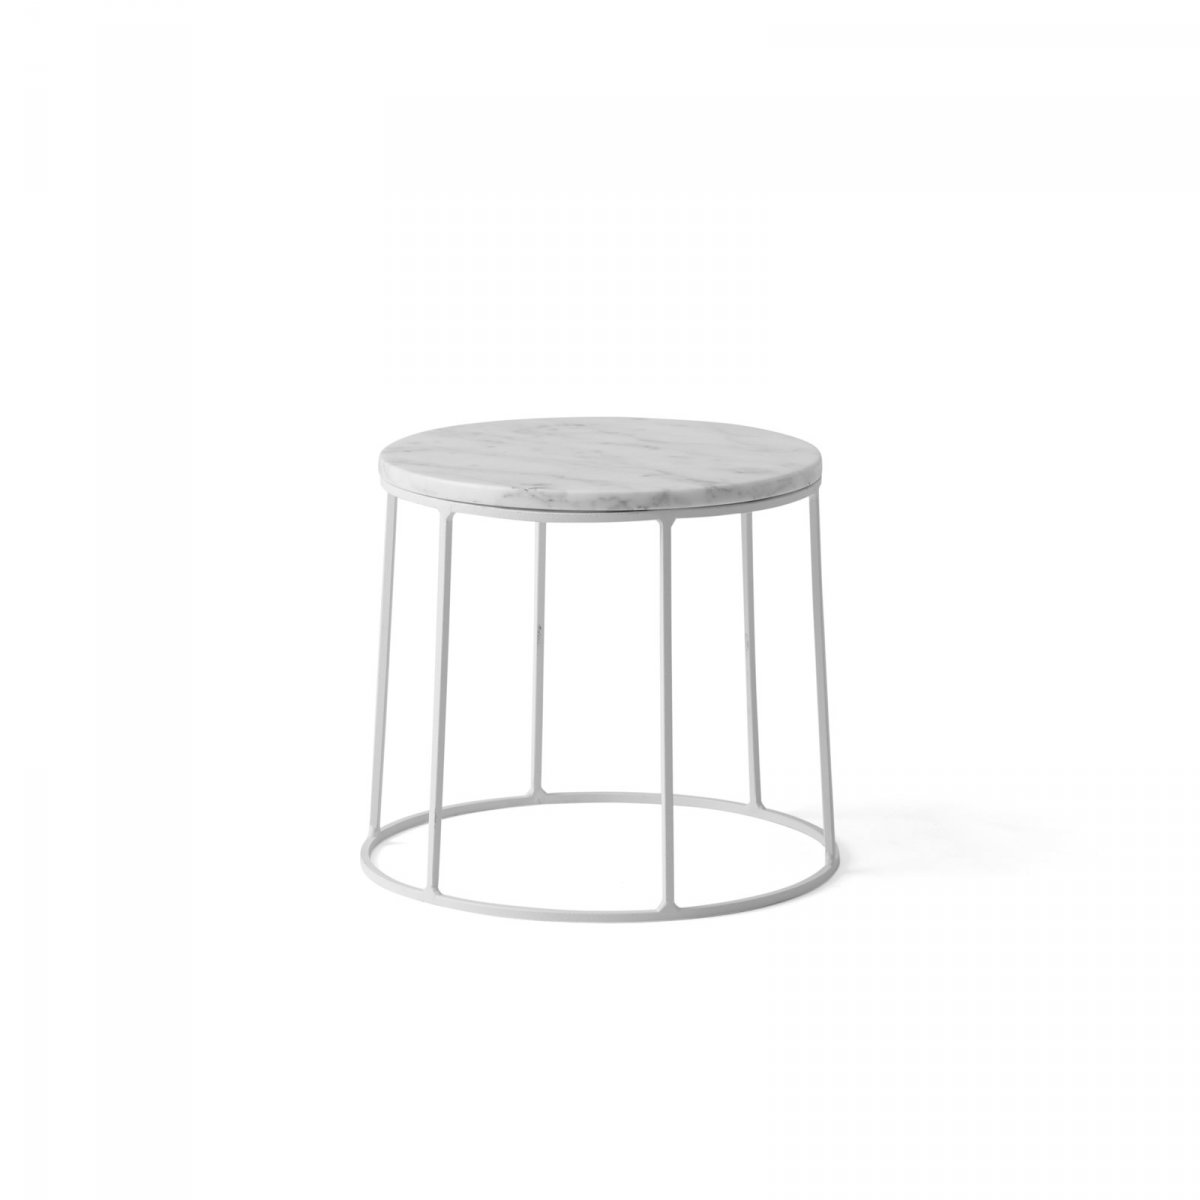 Wire Marble Top and Base, white, small.